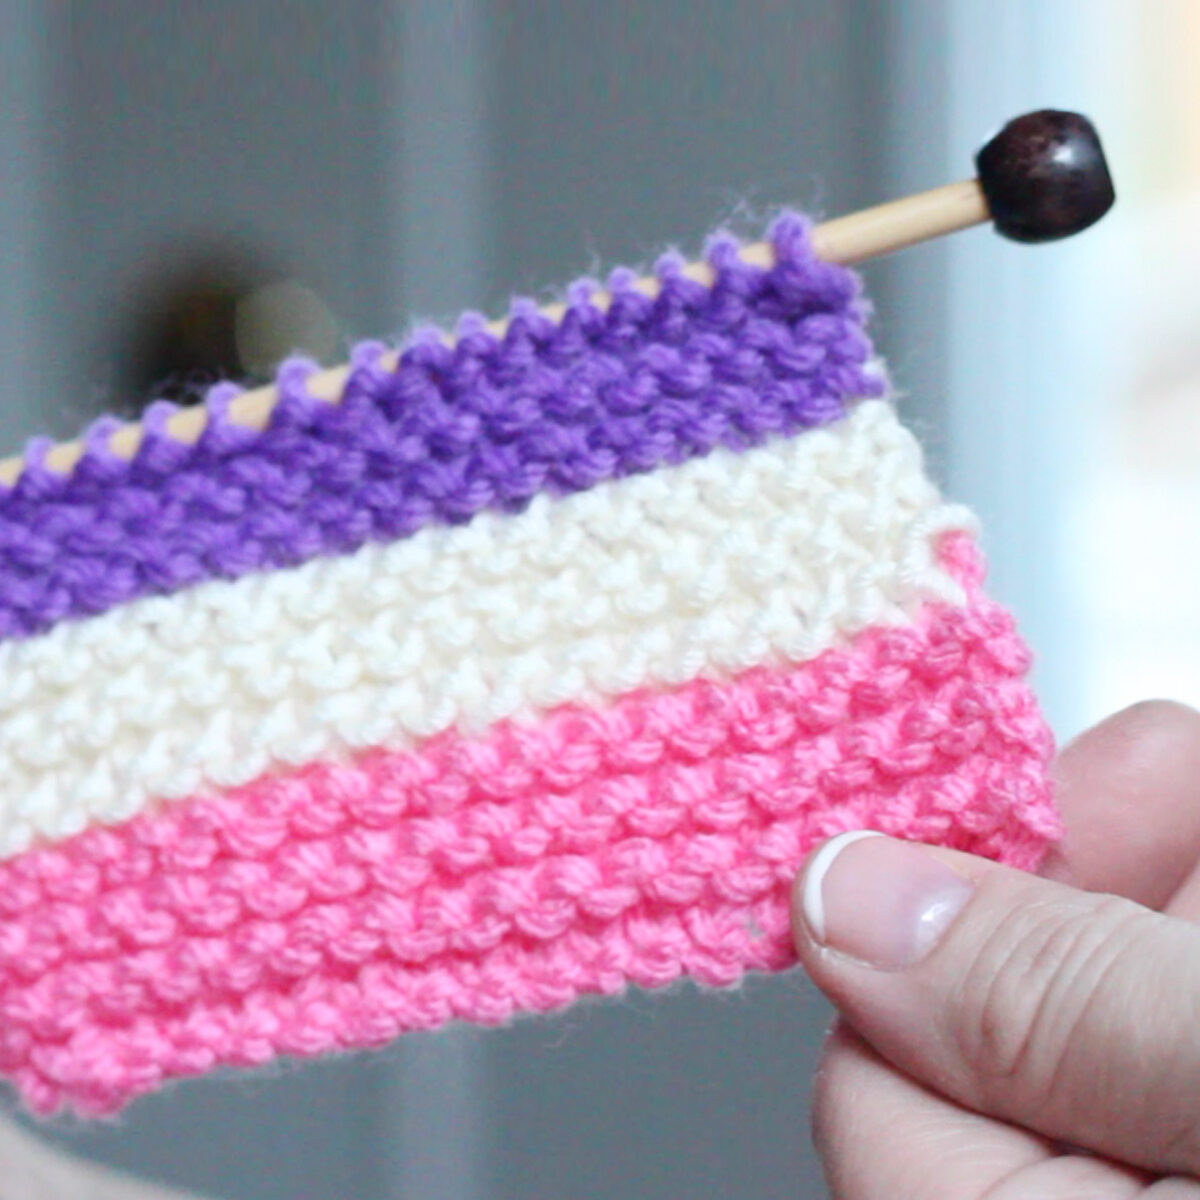 Knitted Swatch of horizontal stripes in purple, white, and pink color yarn on knitting needle with hands holding.